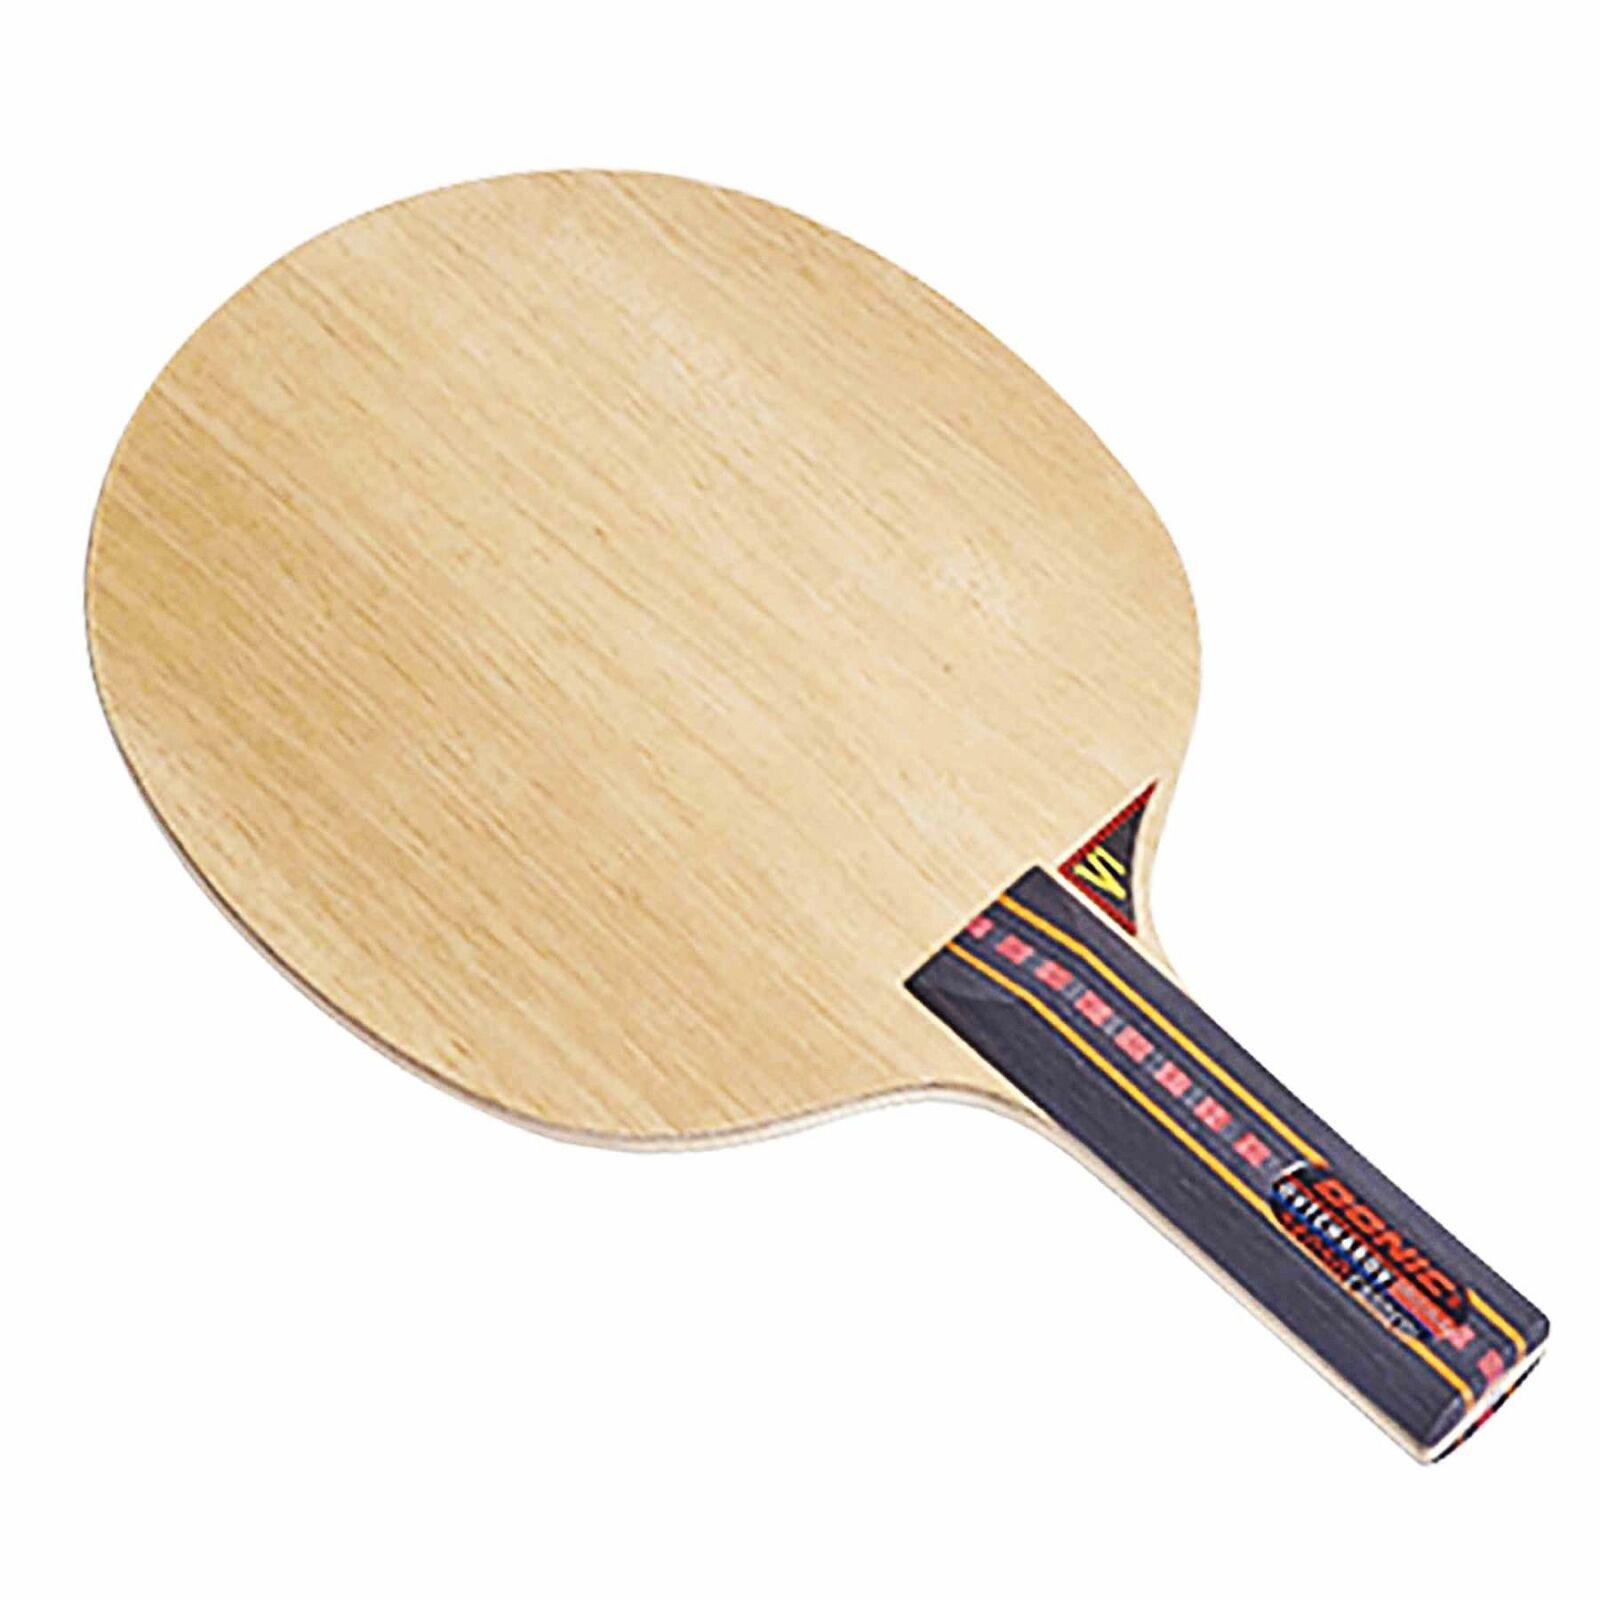 Donic Ovtcharov Senso Charbon Tennis de Table-Bois Raquette de Tennis de Table